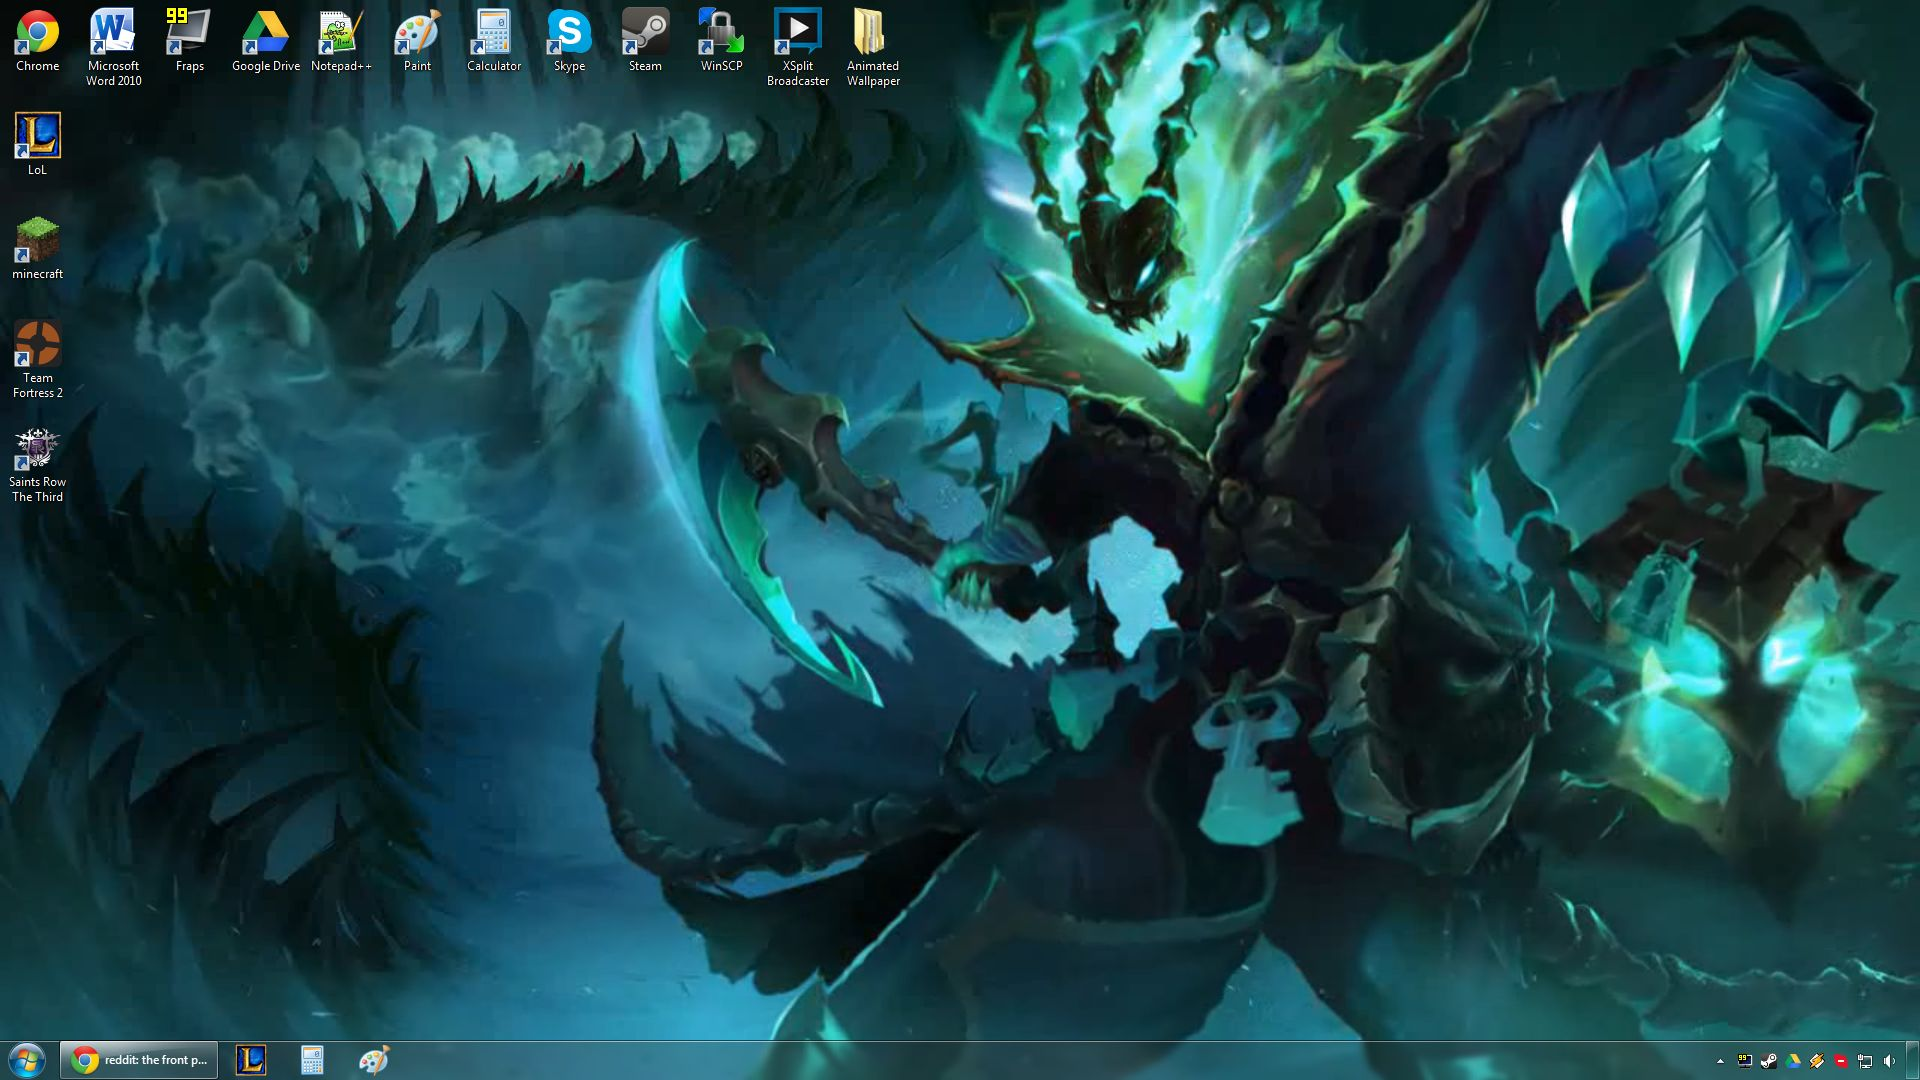 Download Animated Wallpaper League Of Legends Gallery